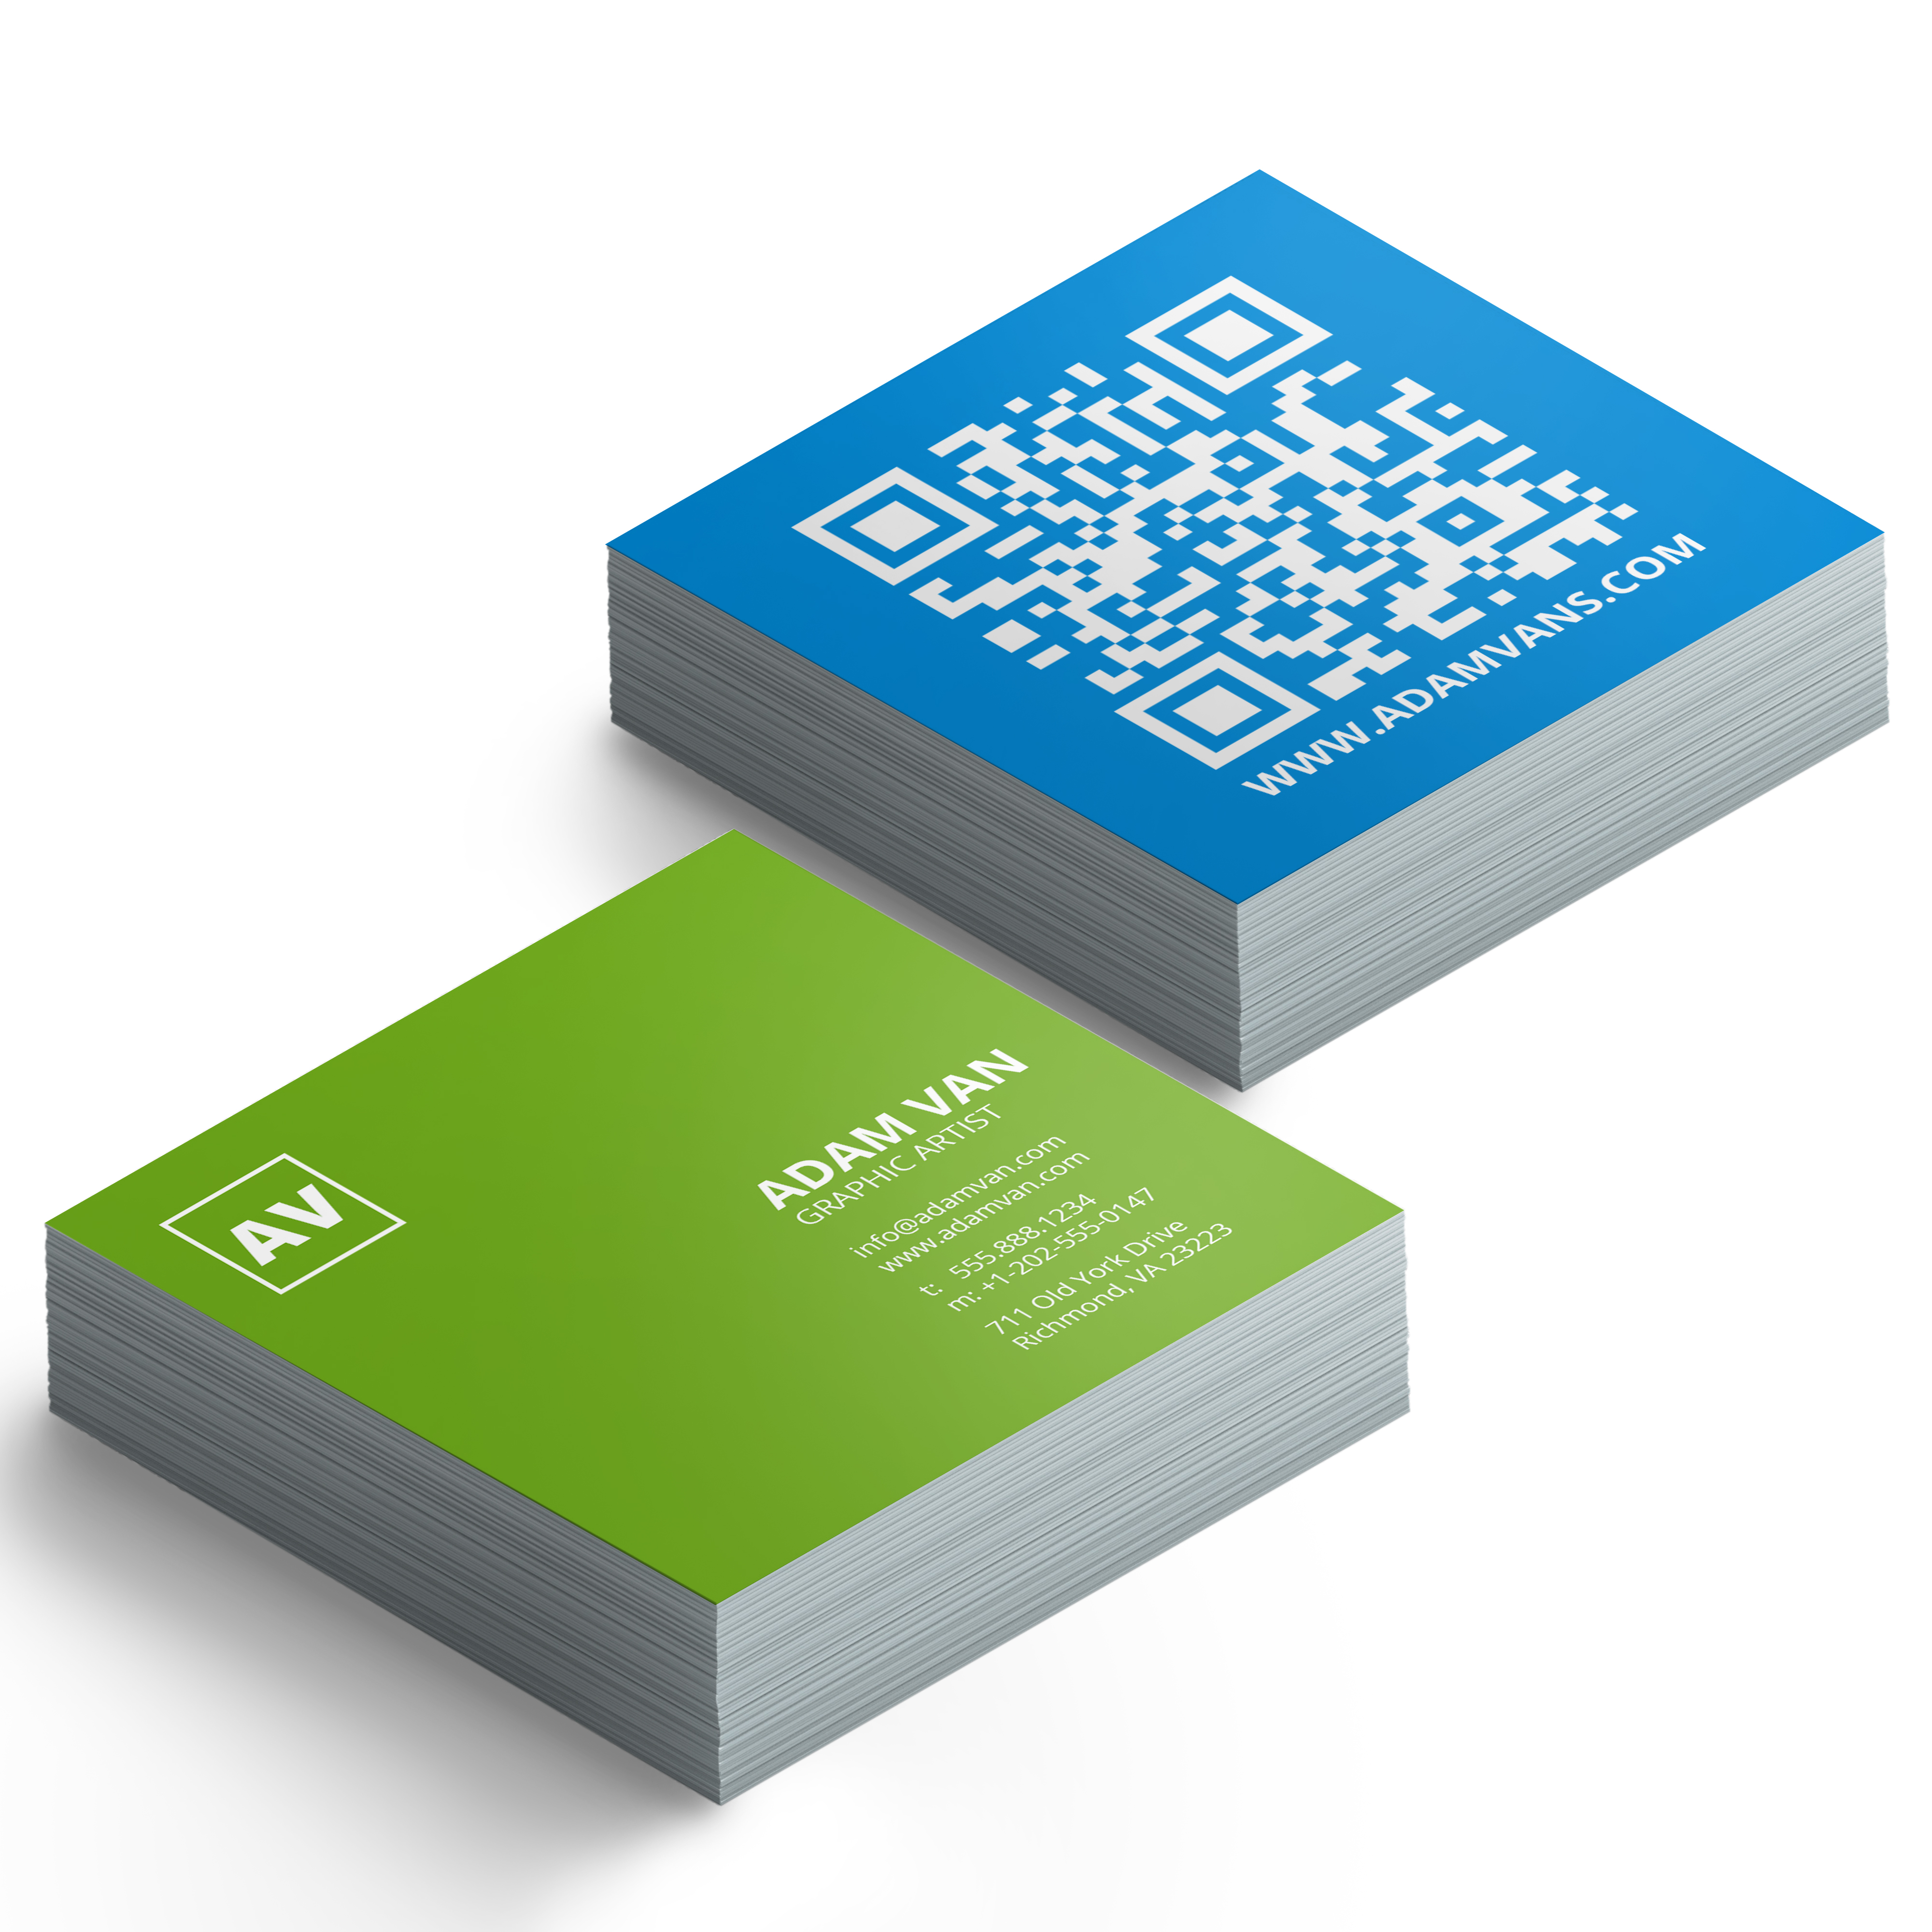 square business cards squarebcsize suarebcstocks squarebccoating squarebcprintedside squarebcroundedcorner previous